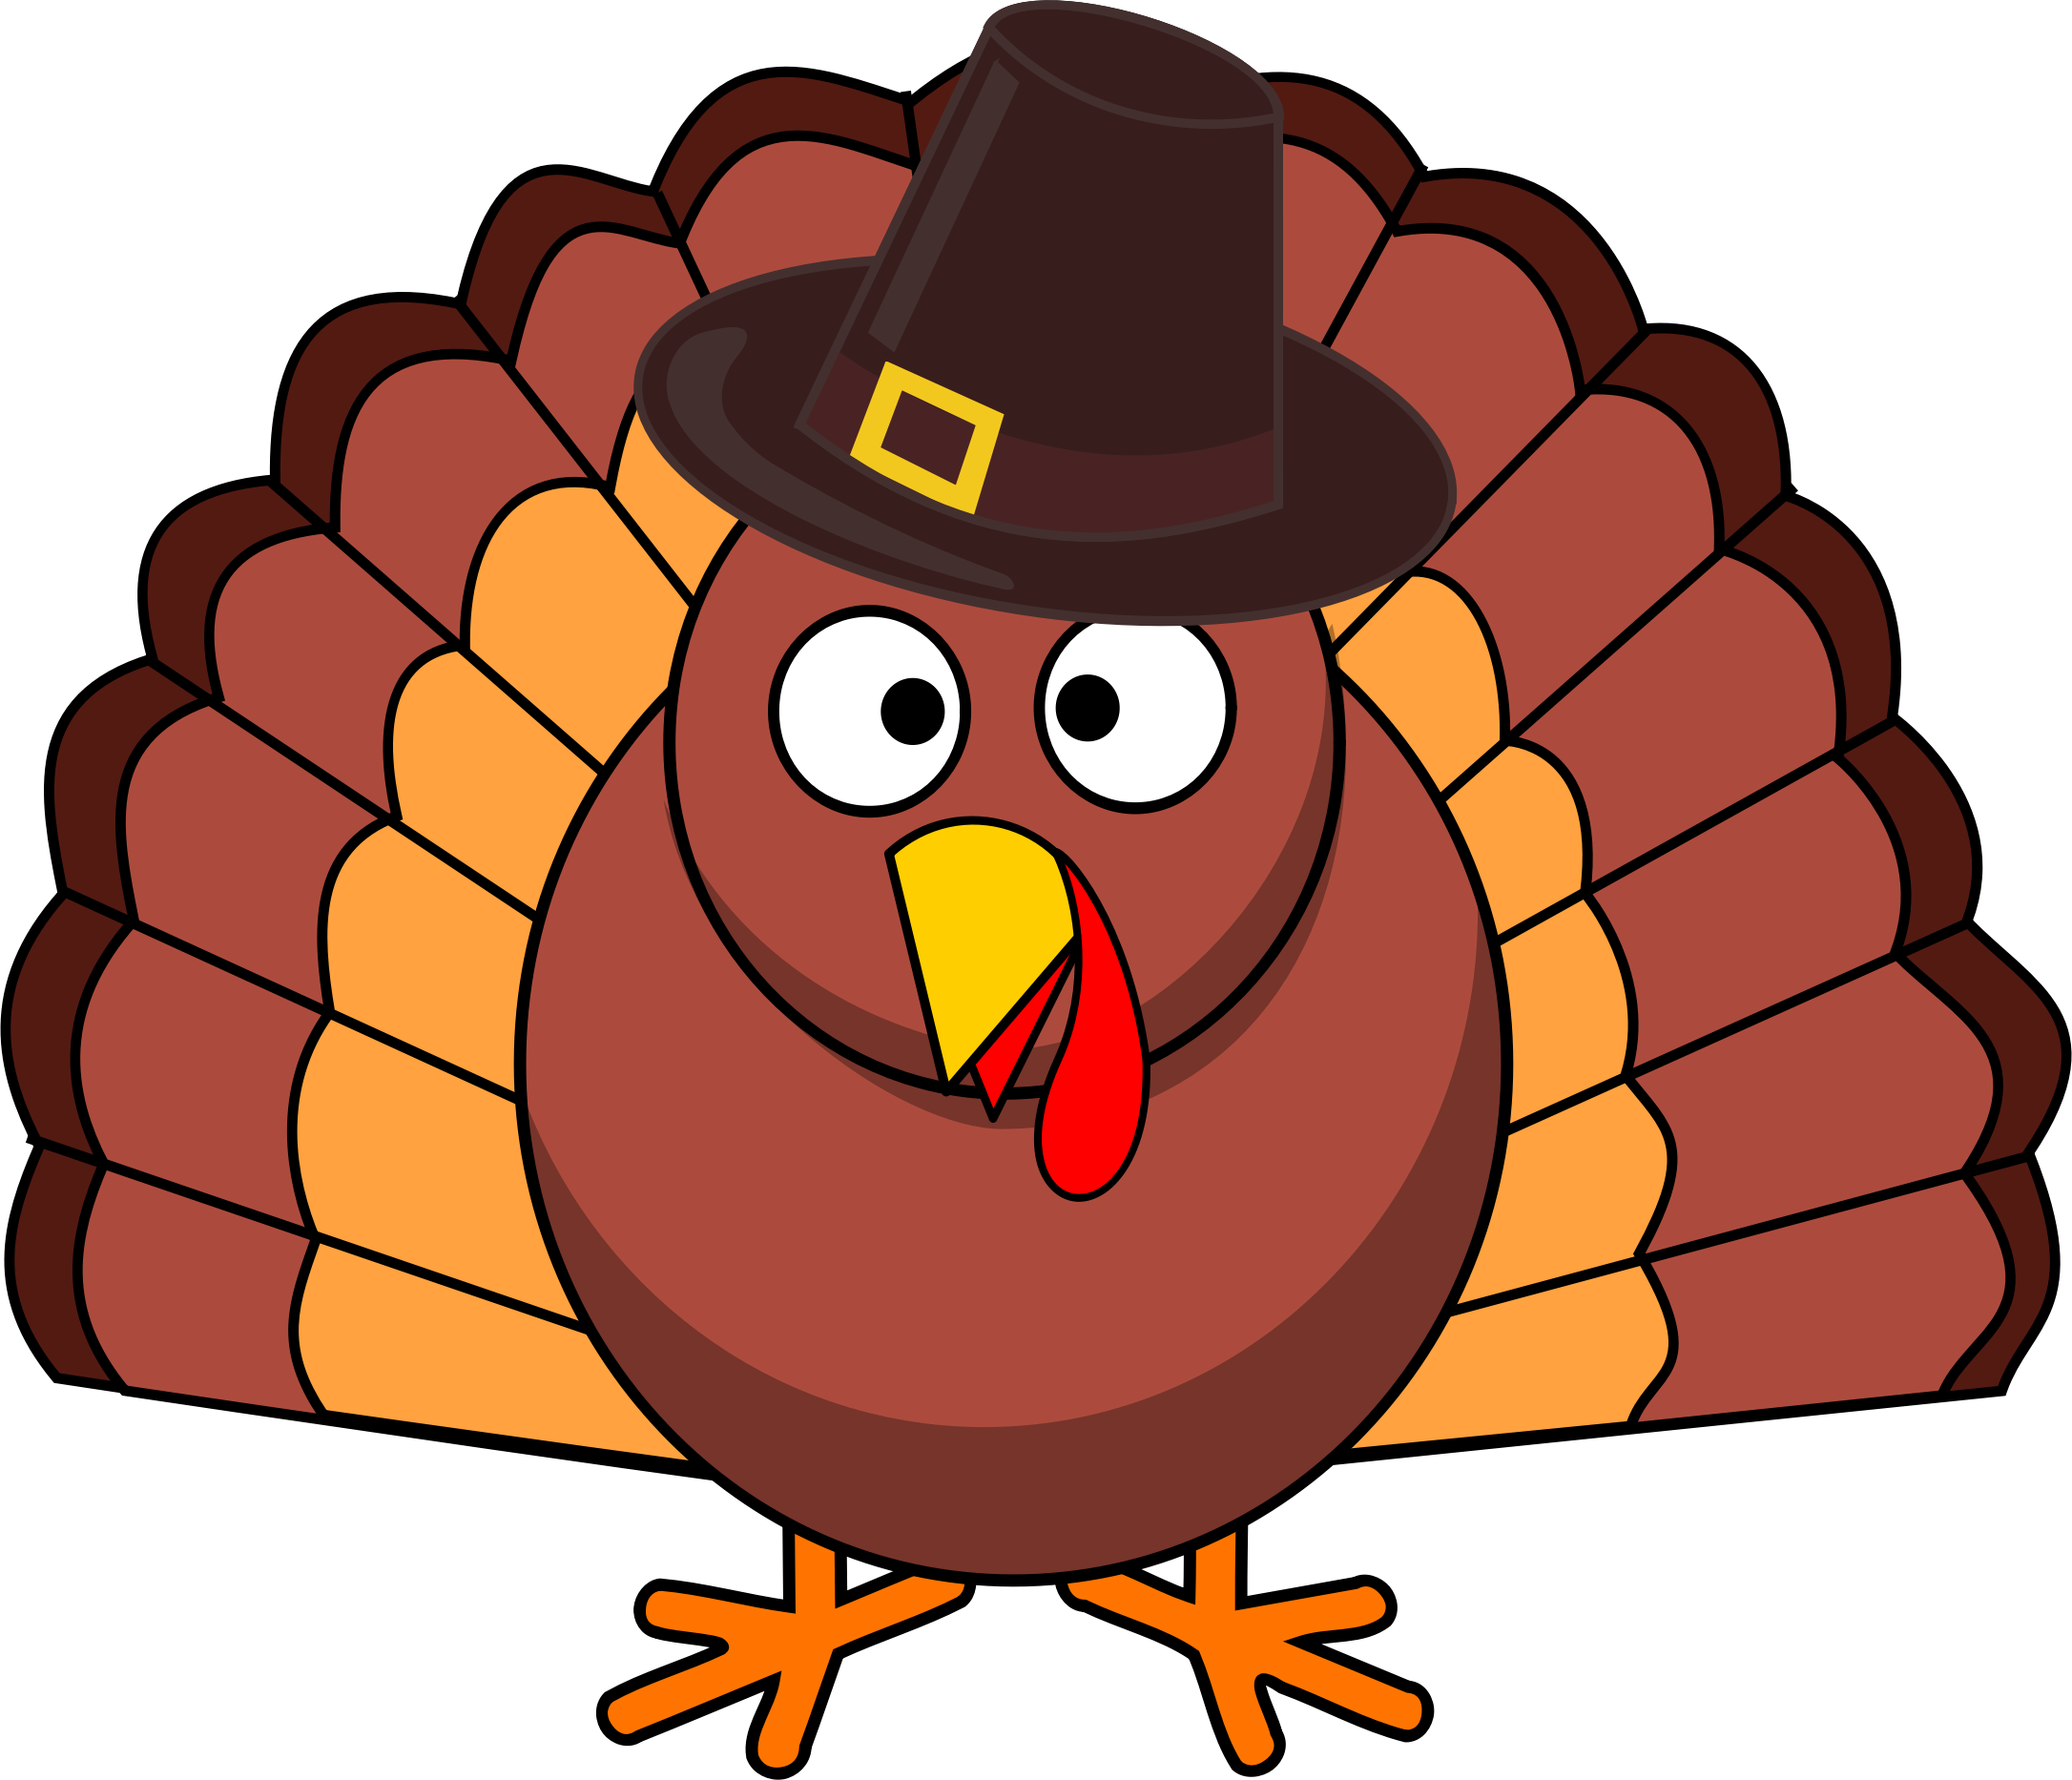 Easy to draw turkey clipart image royalty free Thanksgiving Turkey Drawing at GetDrawings.com | Free for personal ... image royalty free